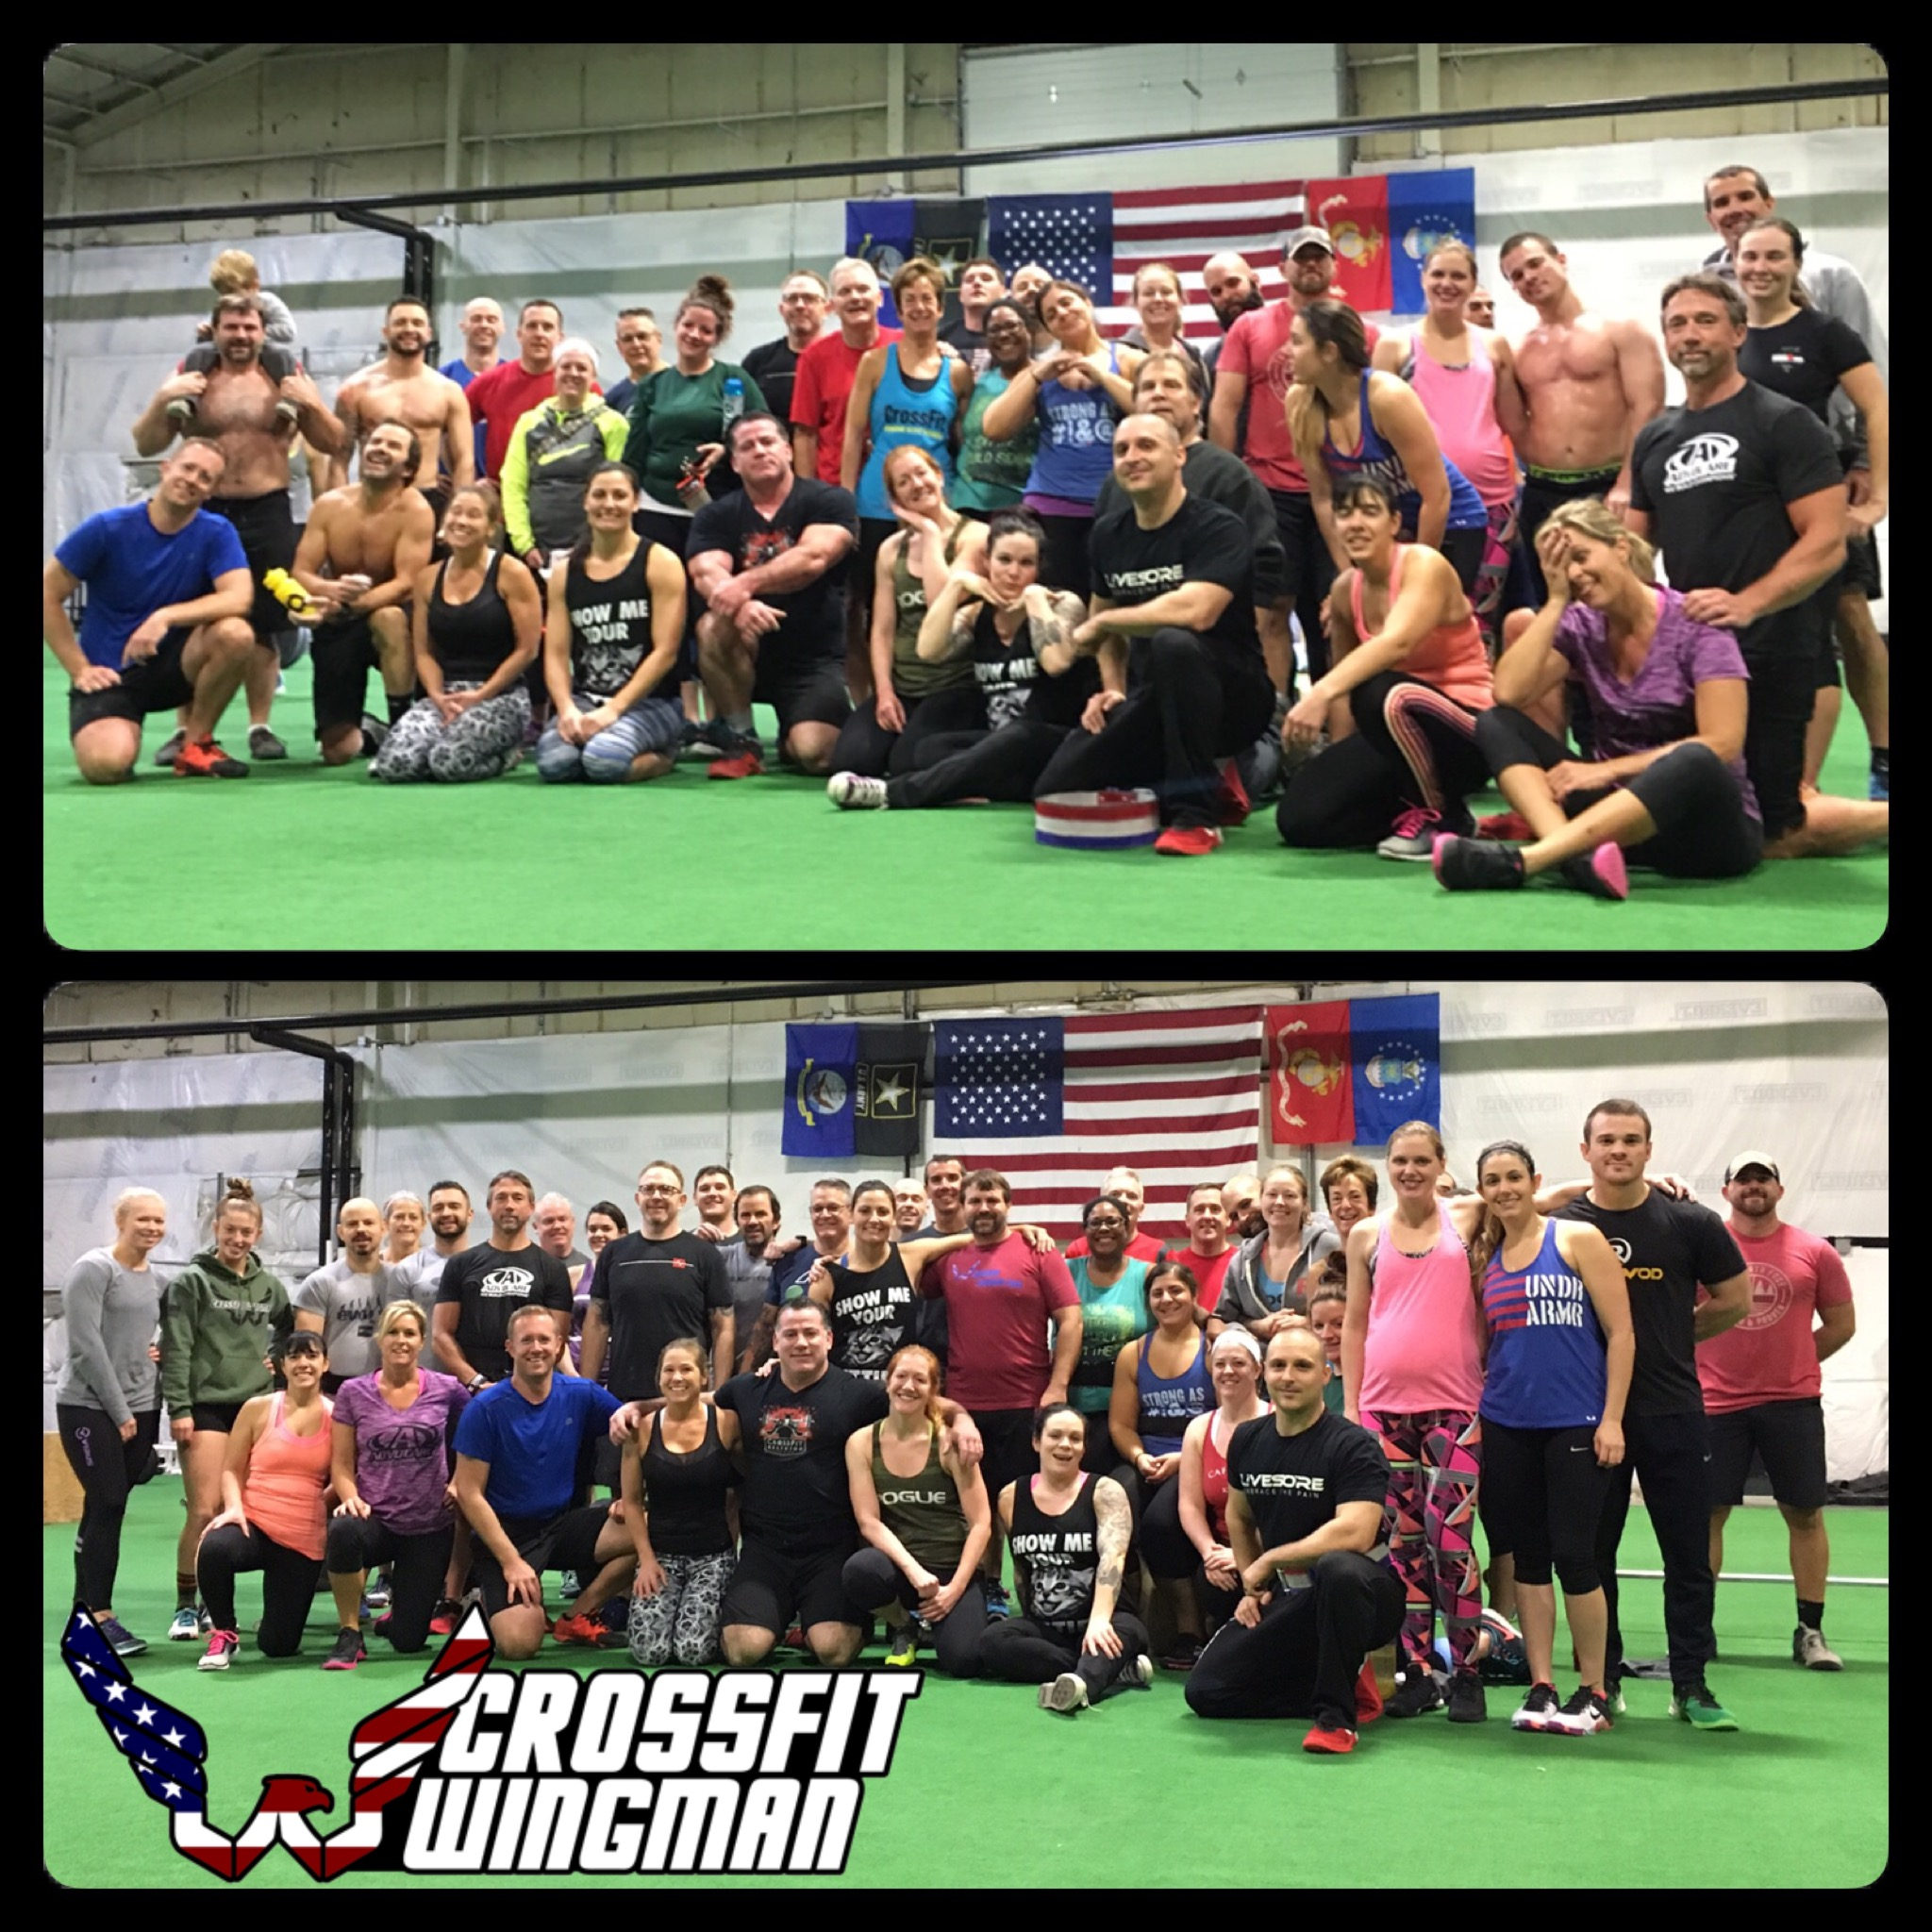 Before & After the Thanksgiving Day WOD  We are always so happy to spend the Holidays with our Wingman Family :)